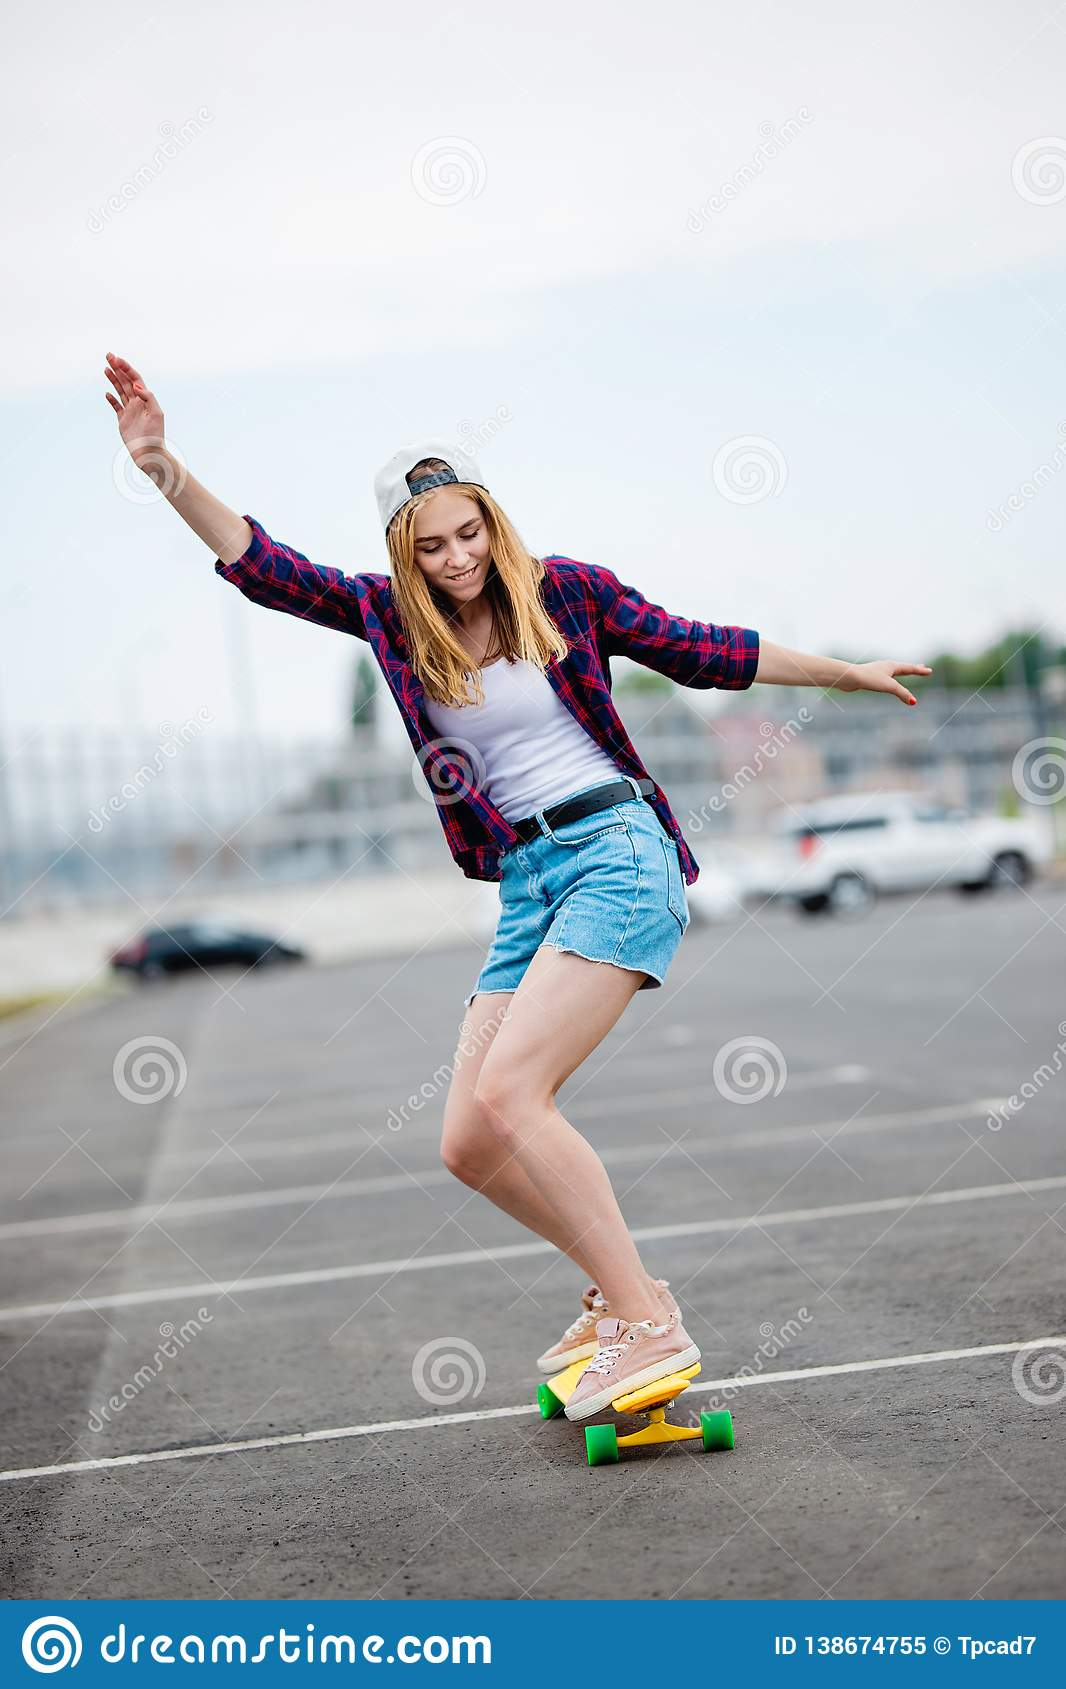 A beautiful blond girl wearing checkered shirt, cap and denim shorts is longboarding while stretching out her hands